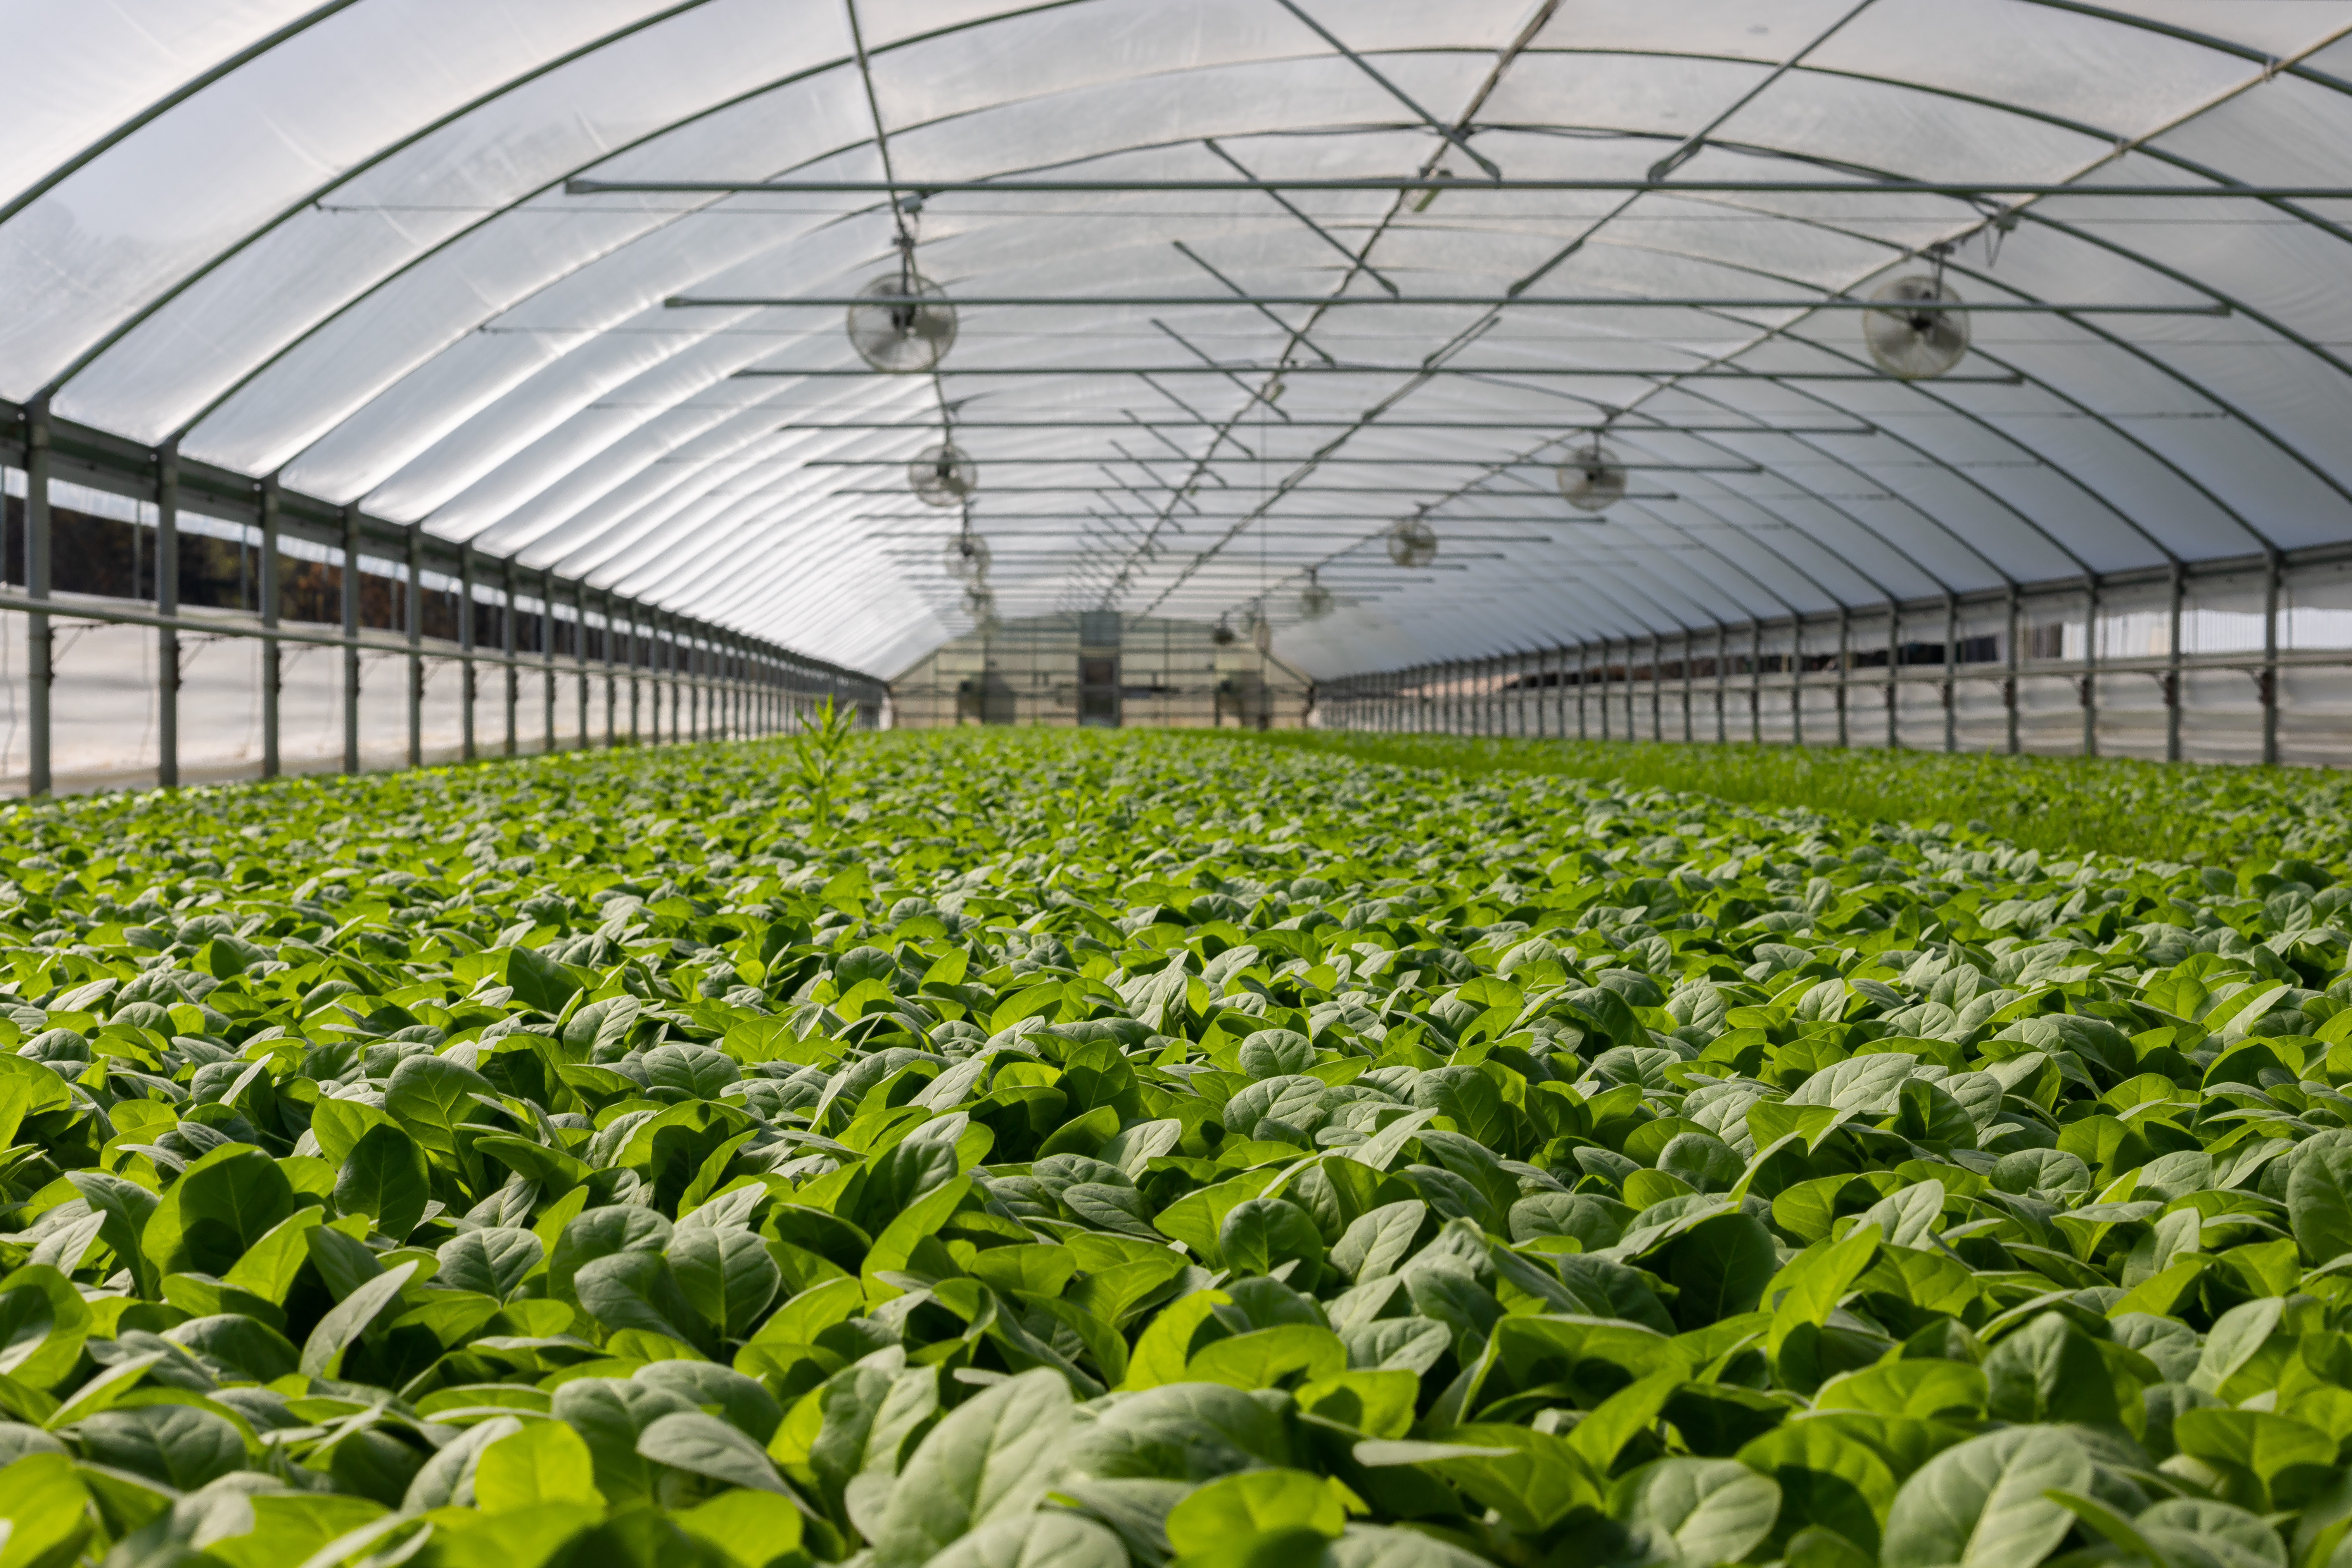 An expanse of green plants in a greenhouse